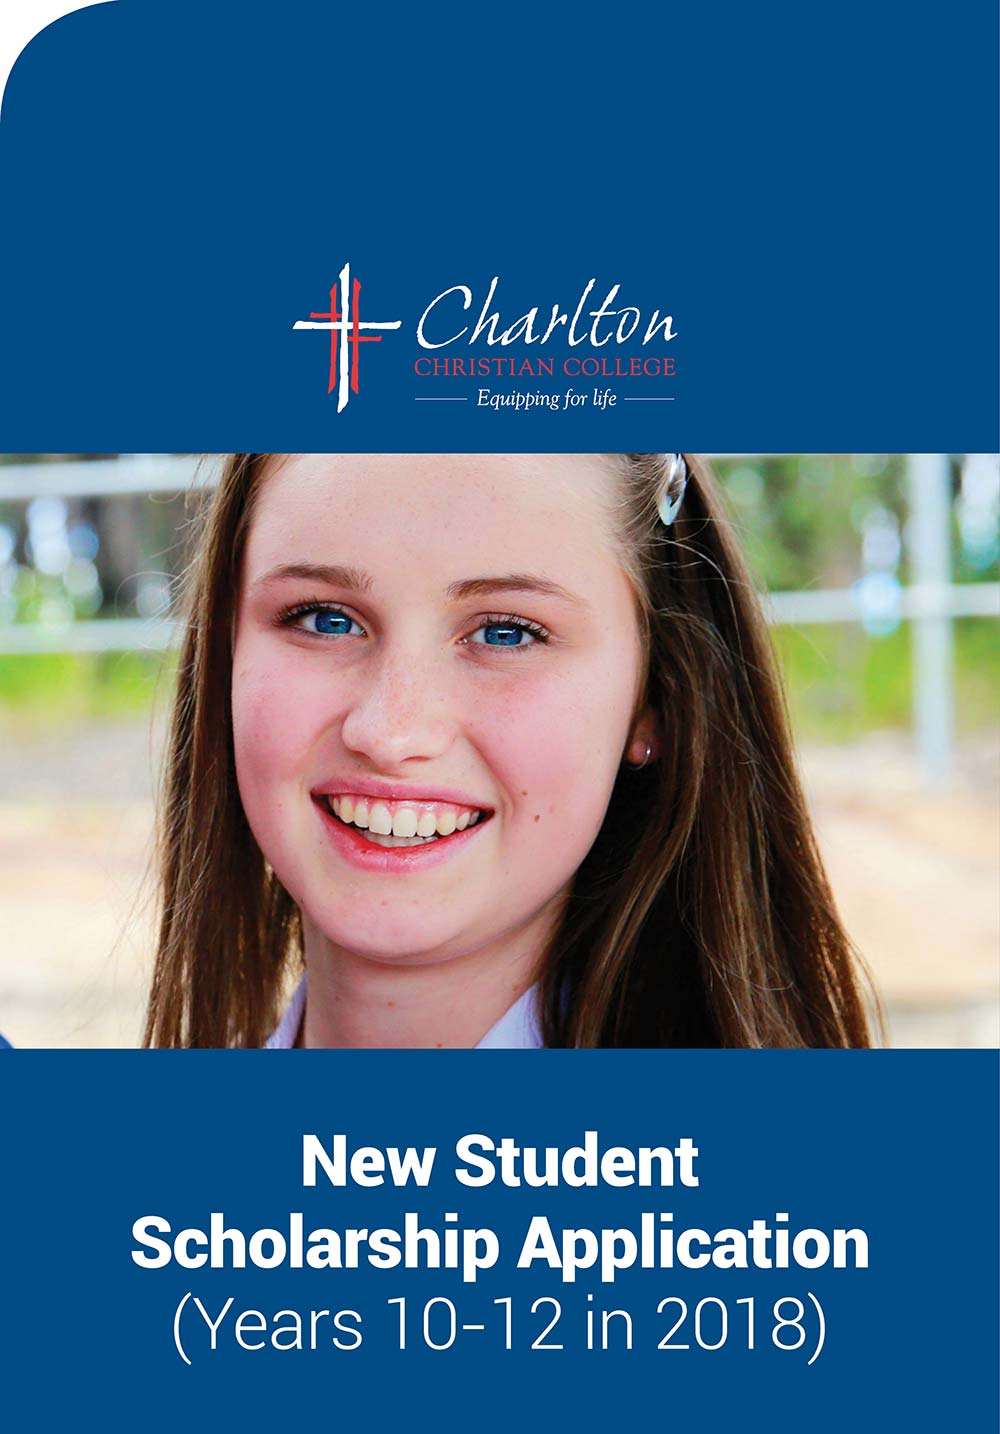 charlton christian college scholarship application new students